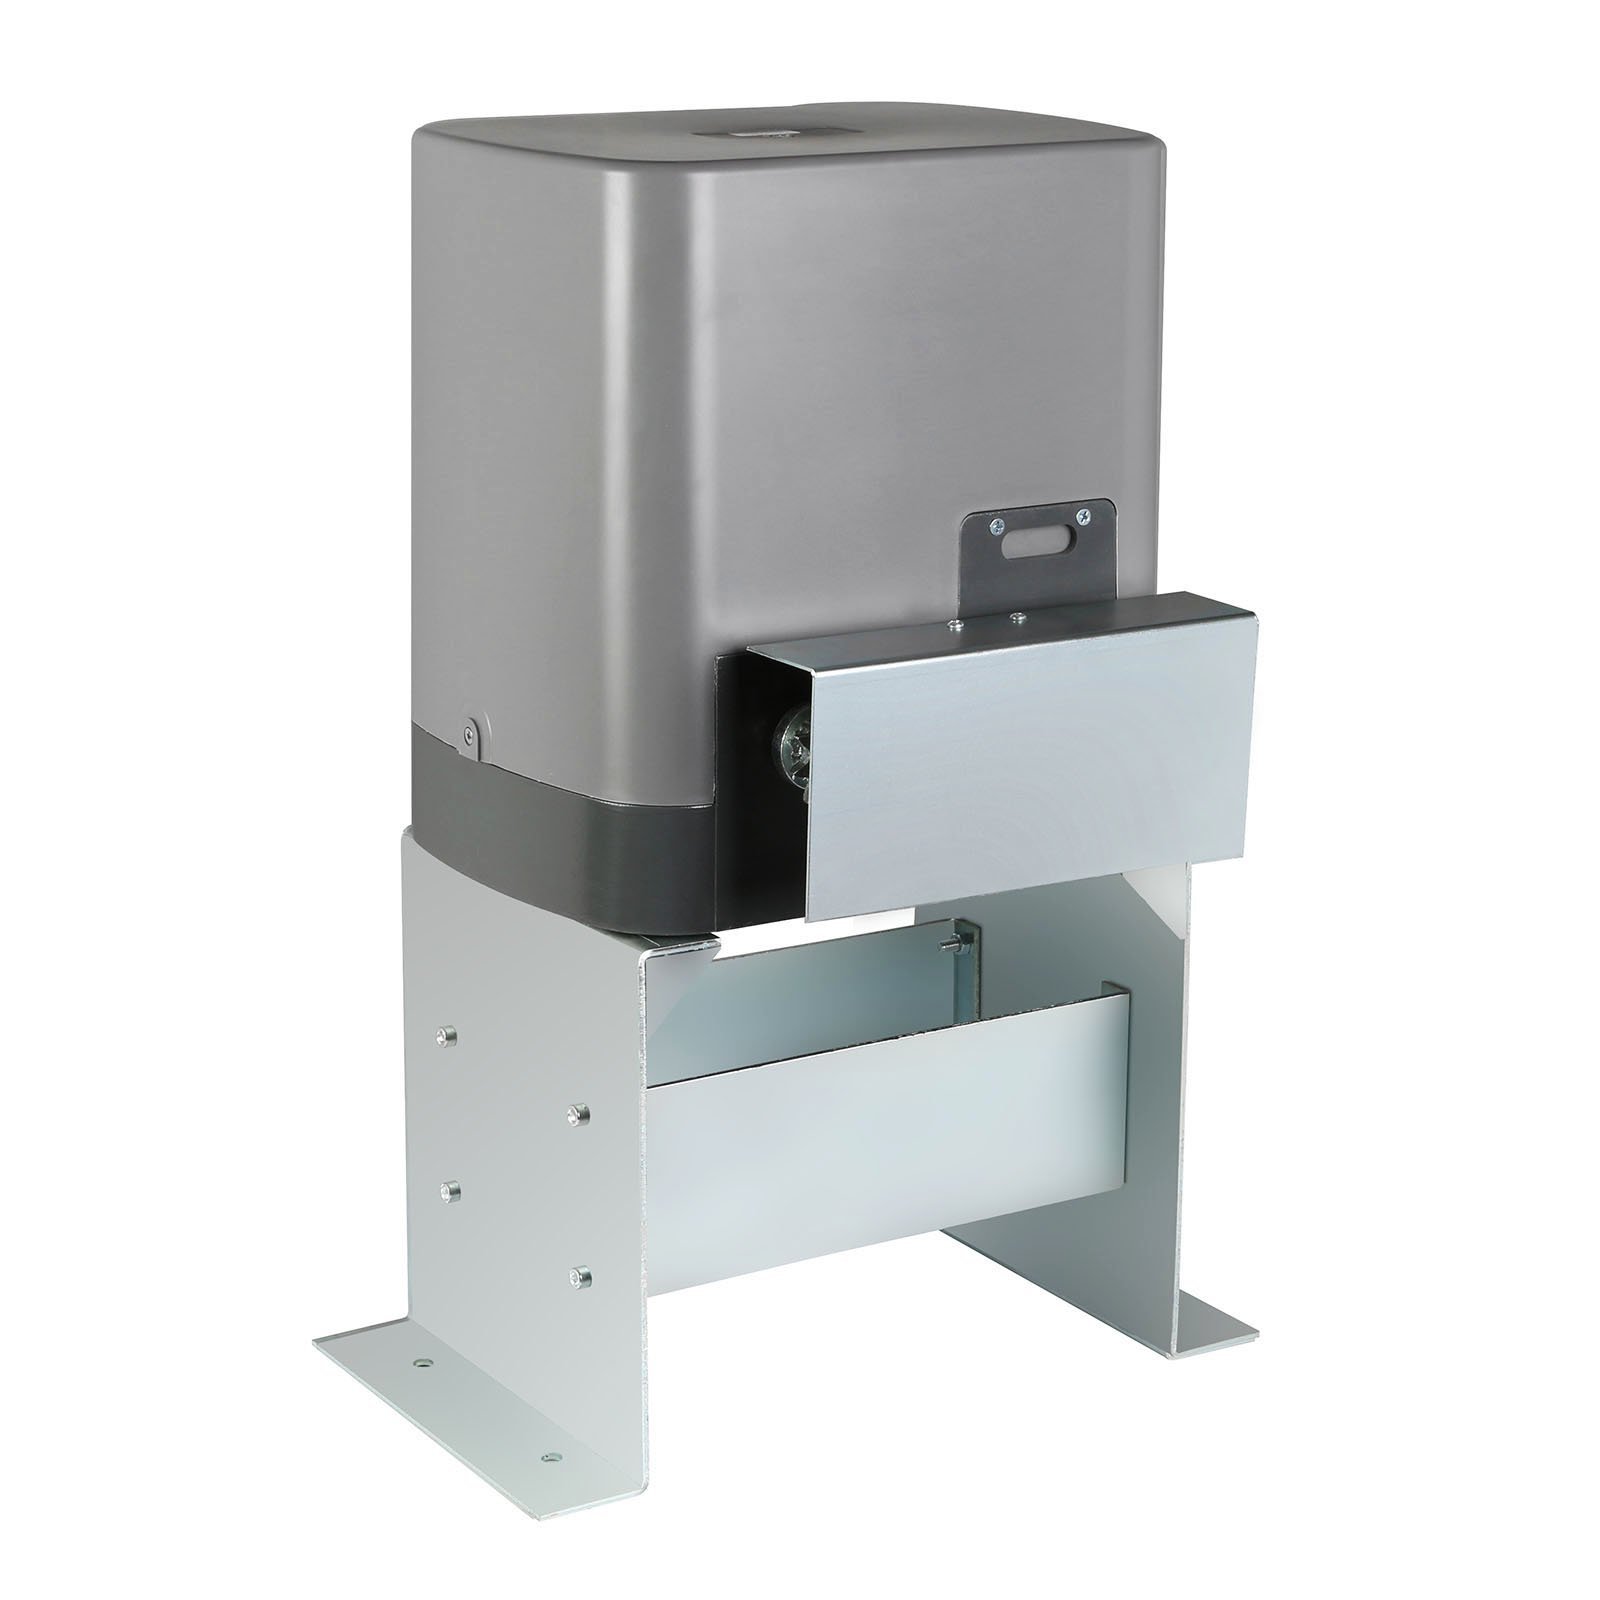 Mophorn AC1400 Sliding Gate Opener for Sliding Gates Up to 20ft Slide Gate Operator 3000LBS (AC1400) by Mophorn (Image #3)